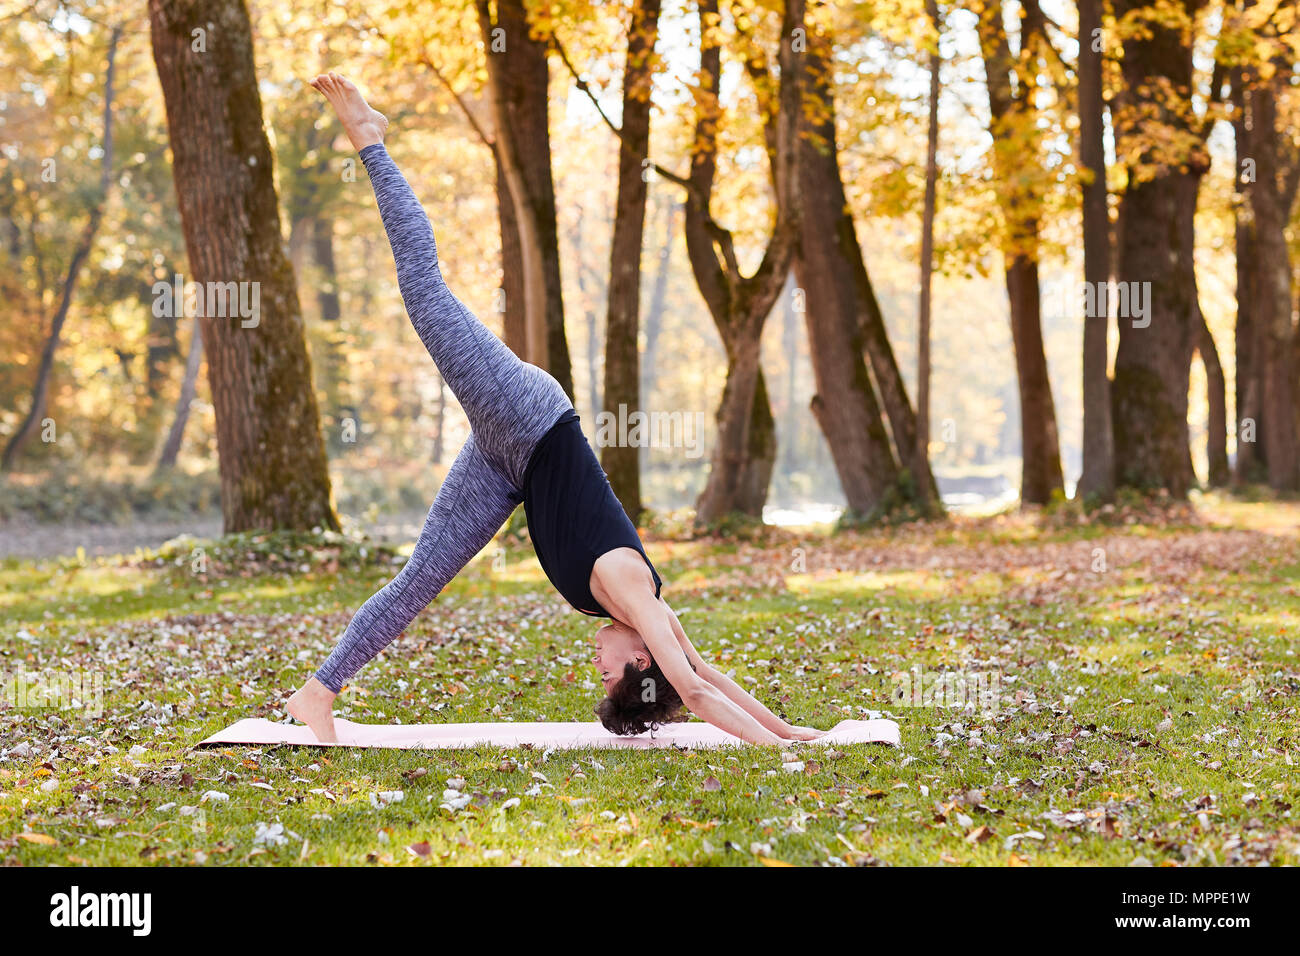 Mid adult woman in forest practicing yoga, downward facing dog position - Stock Image